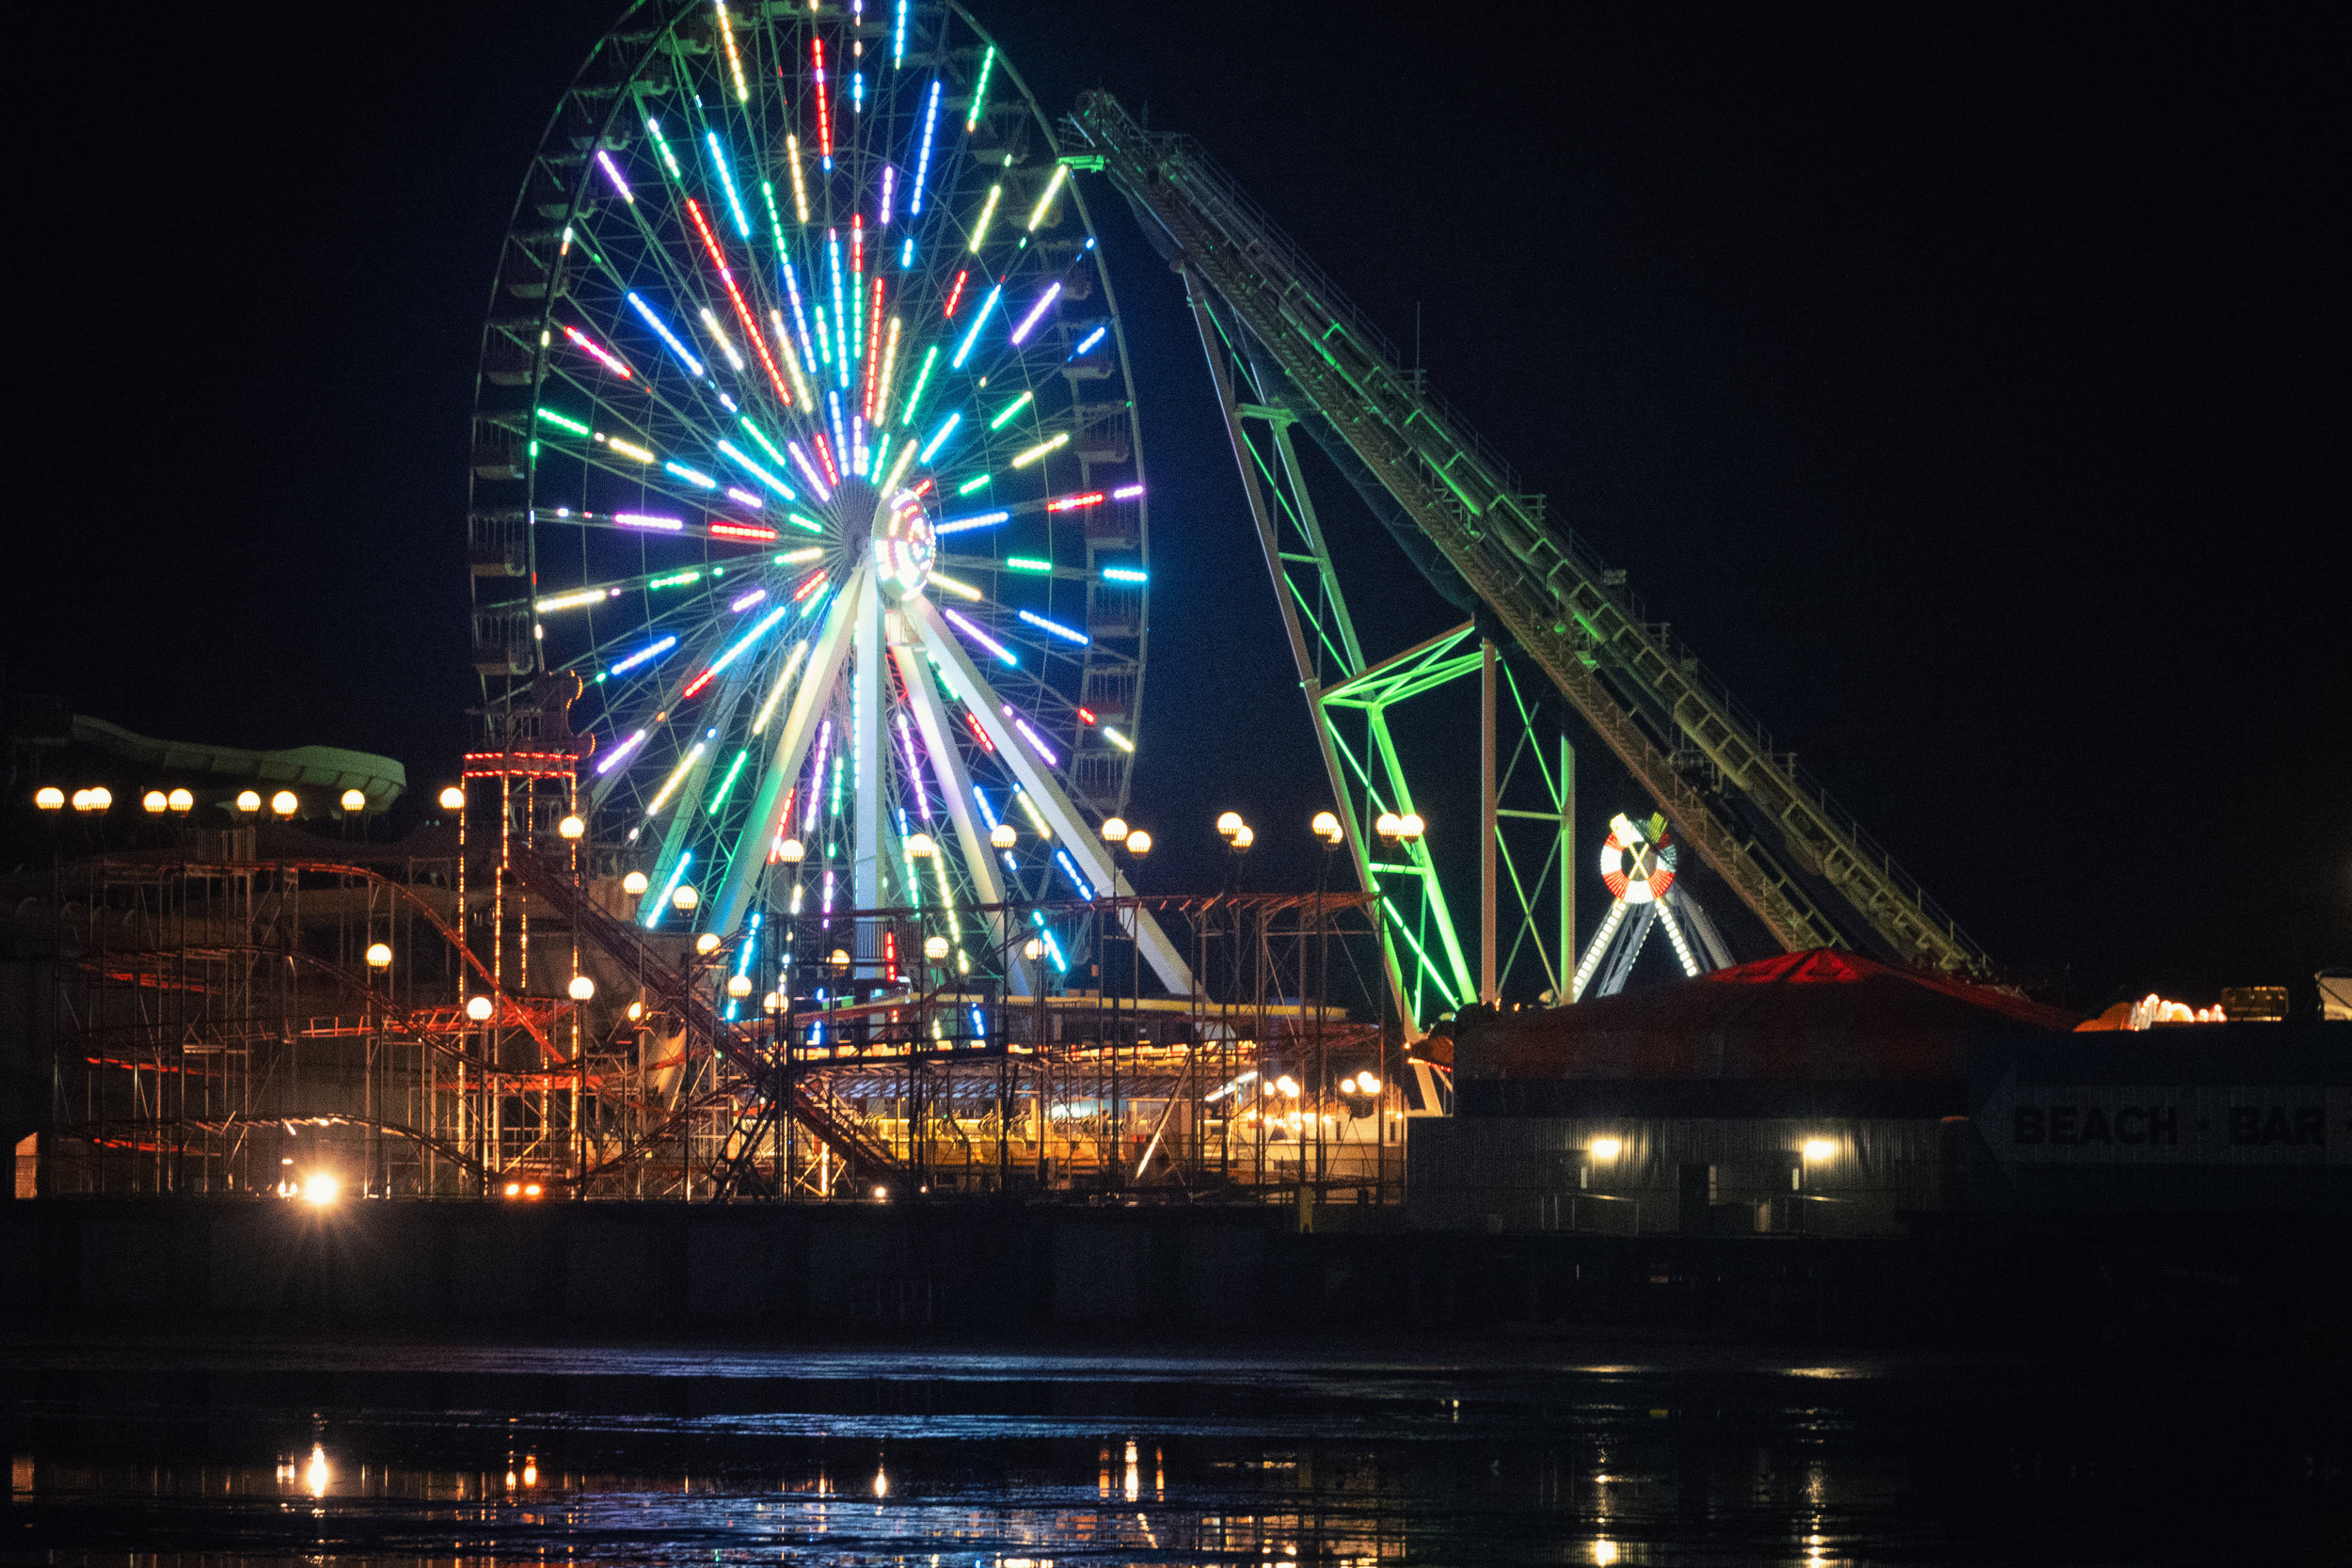 Wildwood Ferris wheel